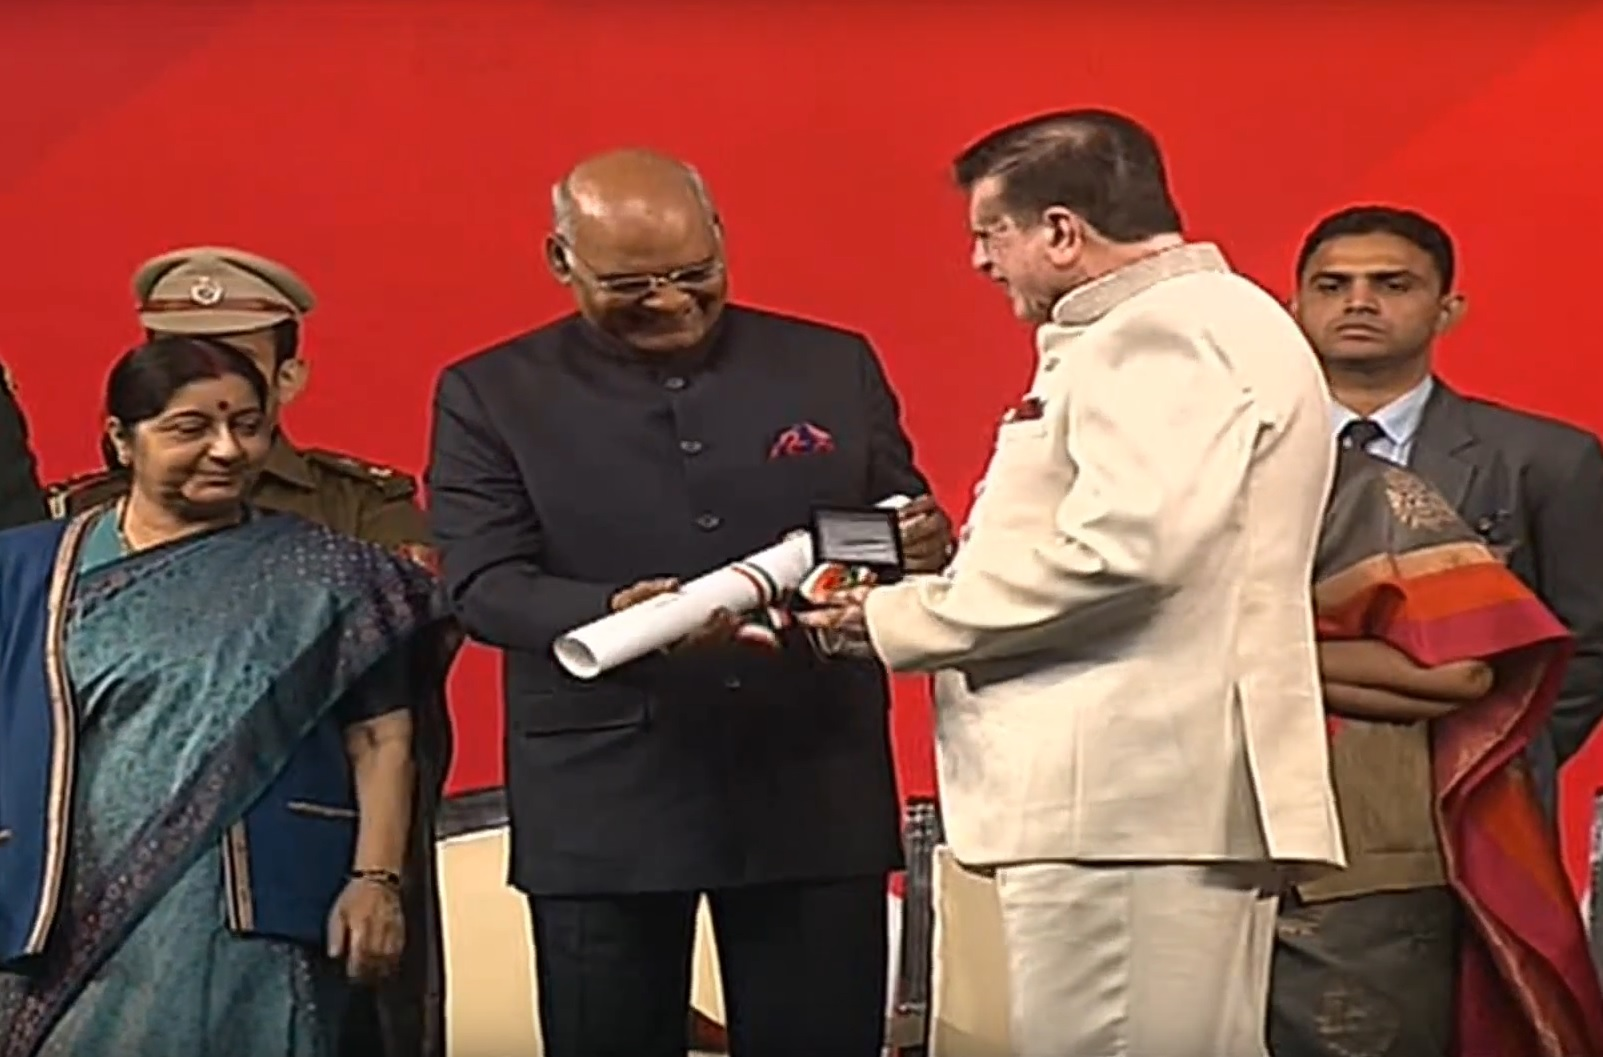 Florida cardiologist, entrepreneur and philanthropist Dr. Kiran Patel receiving the Pravasi Bharatiya Samman from President Kovind in